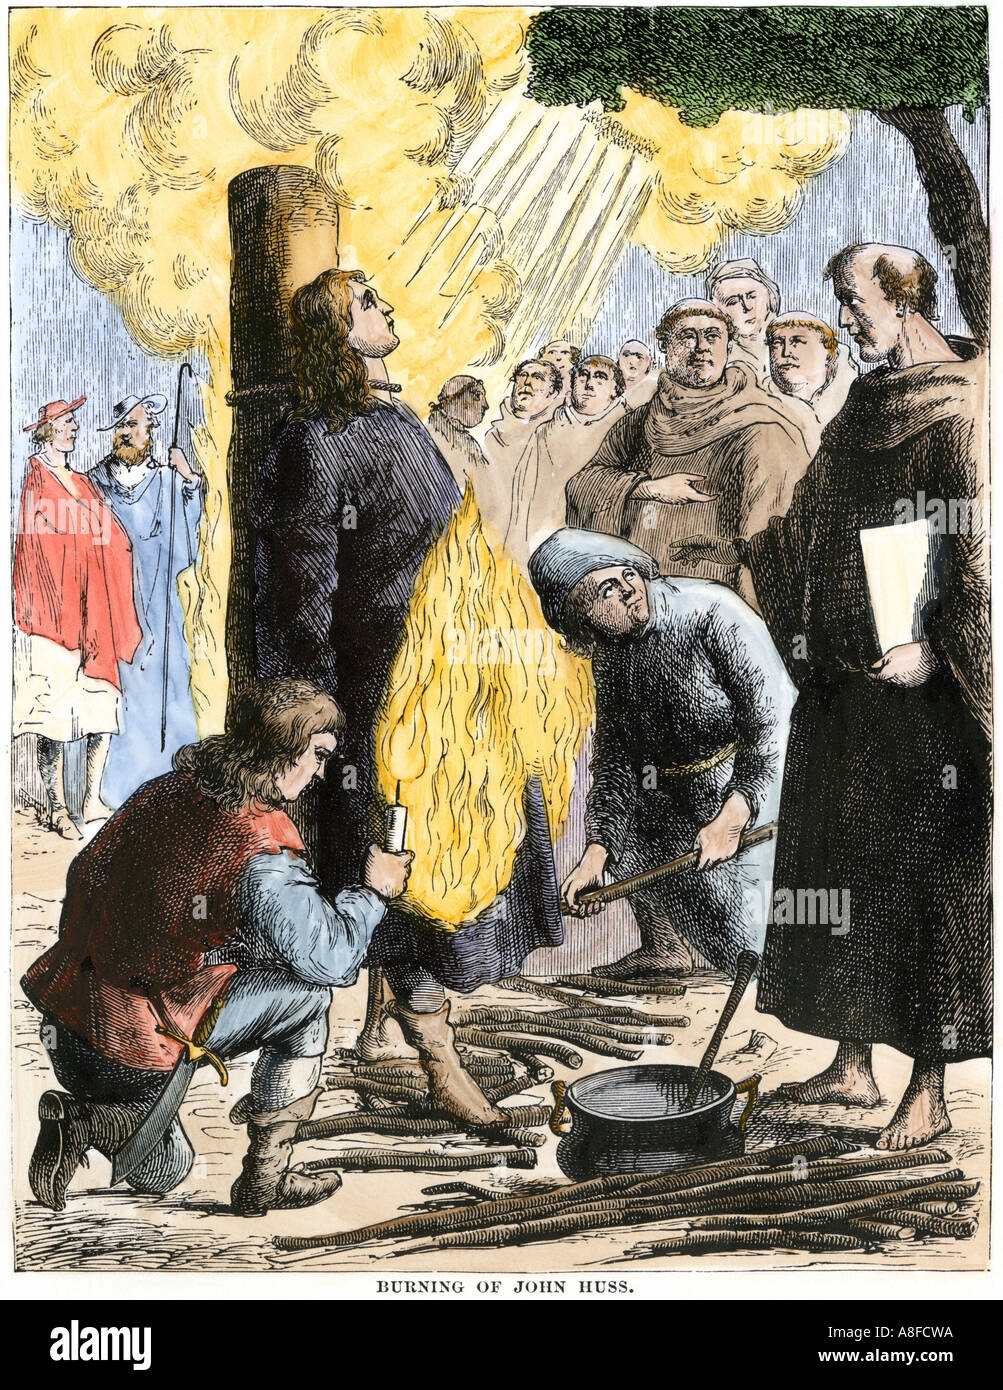 Religious reformer Jan Hus burned at the stake by the Roman Catholic Church 1415. Hand-colored woodcut - Stock Image